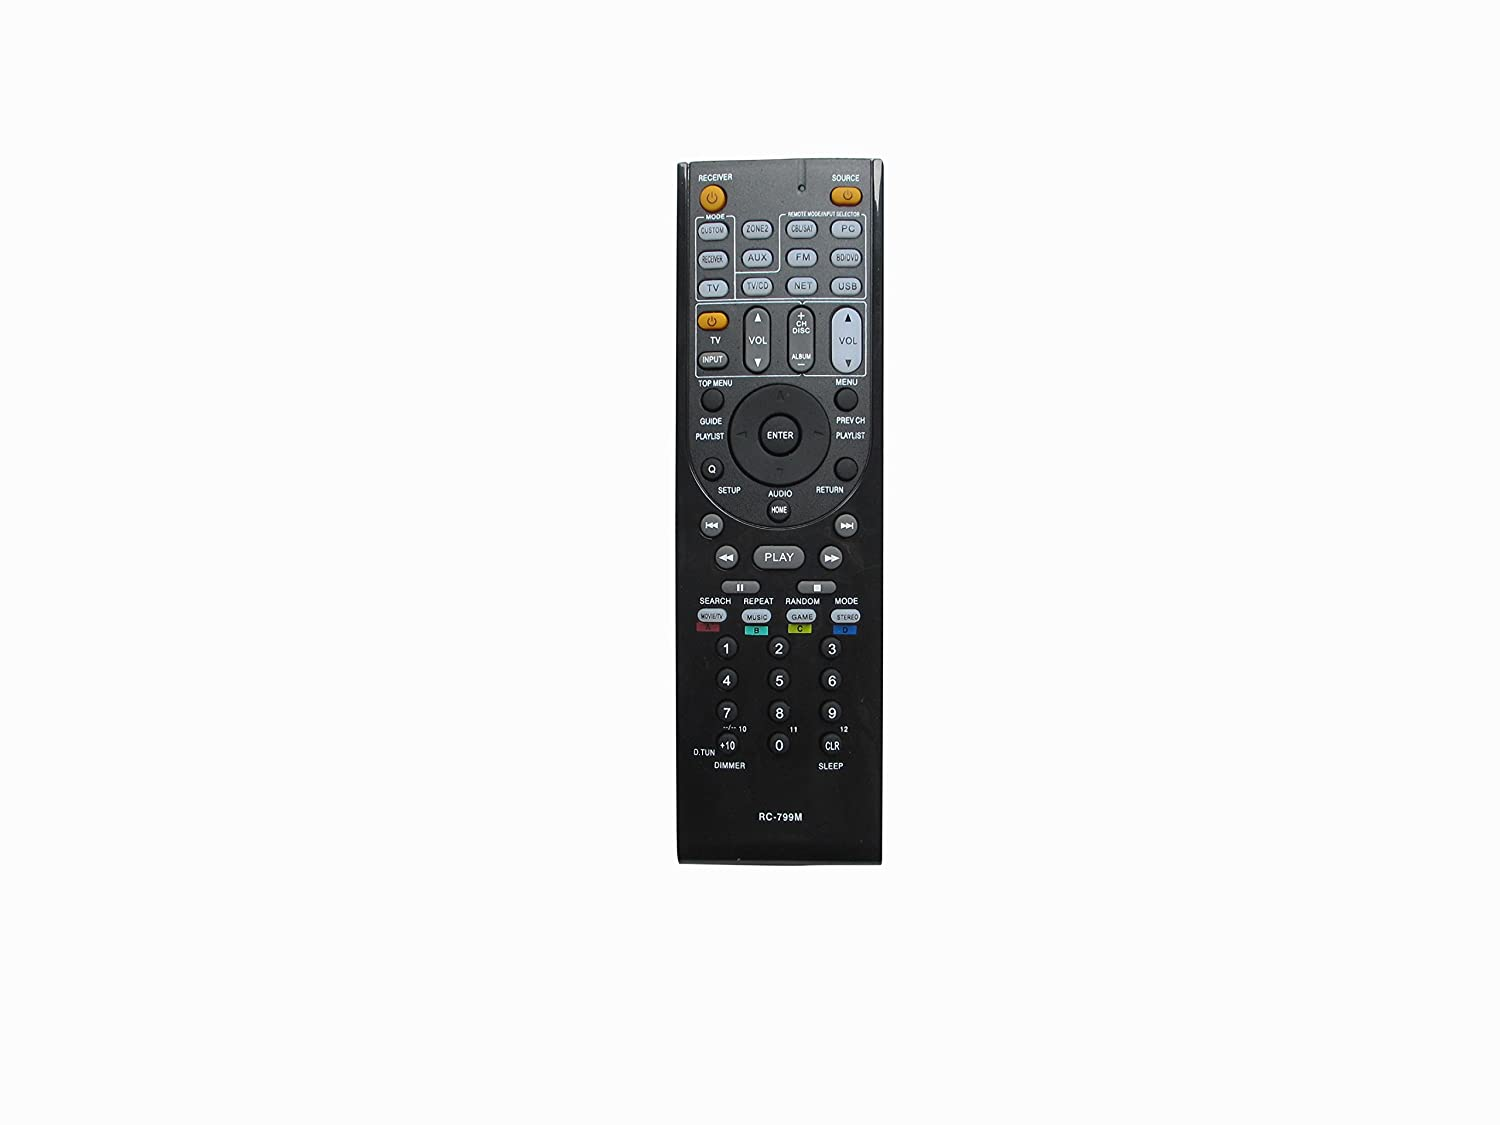 New General Replacement Remote Control Fit For Onkyo TX-NR708 TX-NR1008 HT-R2295 HT-RC230 A/V AV Receiver